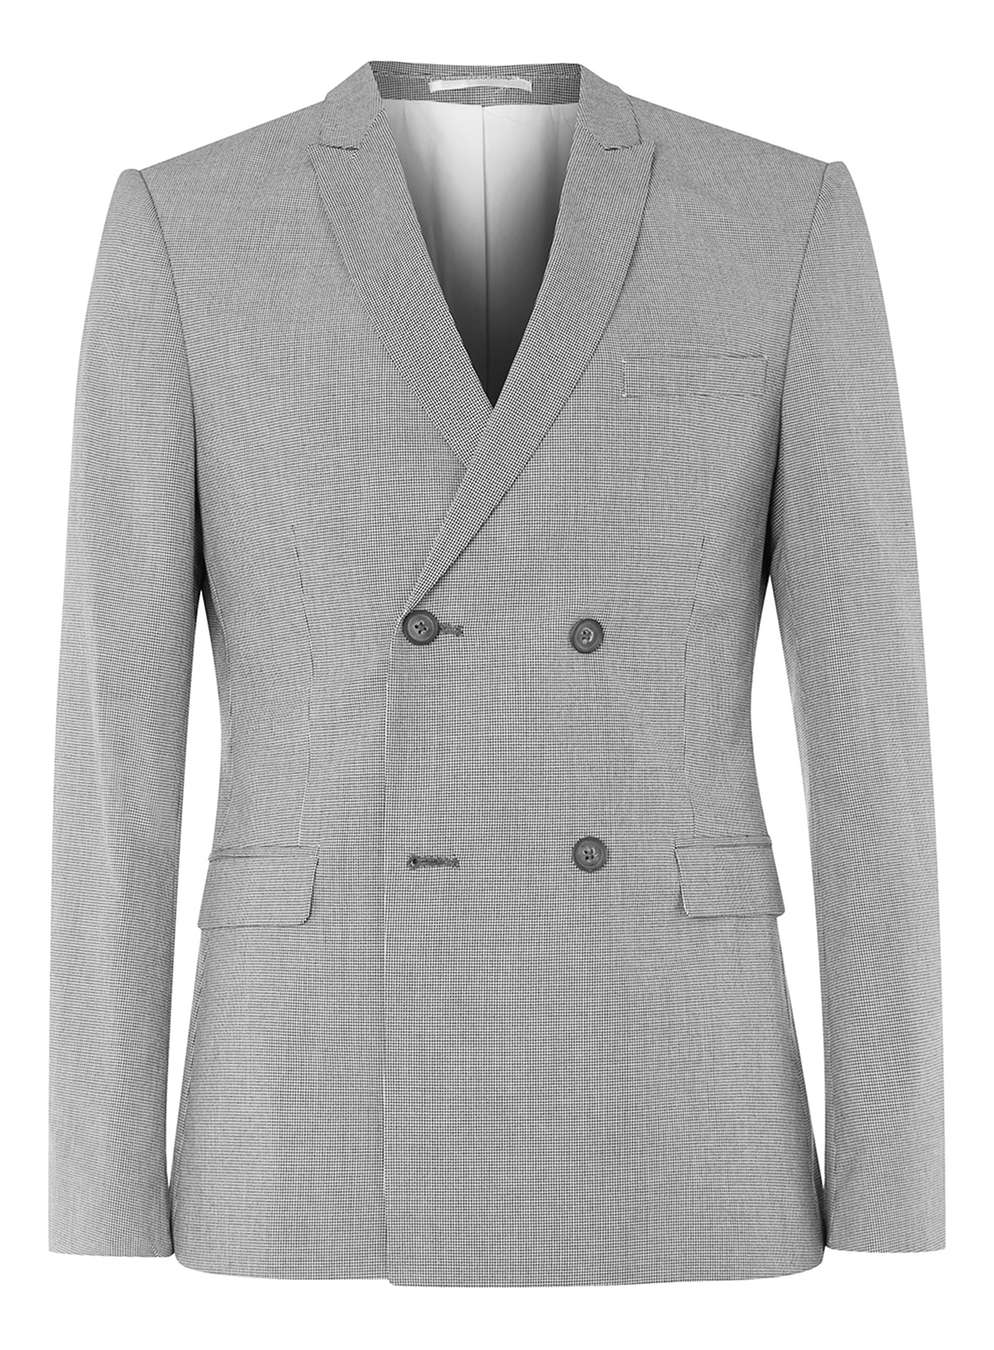 Men's Double-Breasted Blazer | Carl Thompson